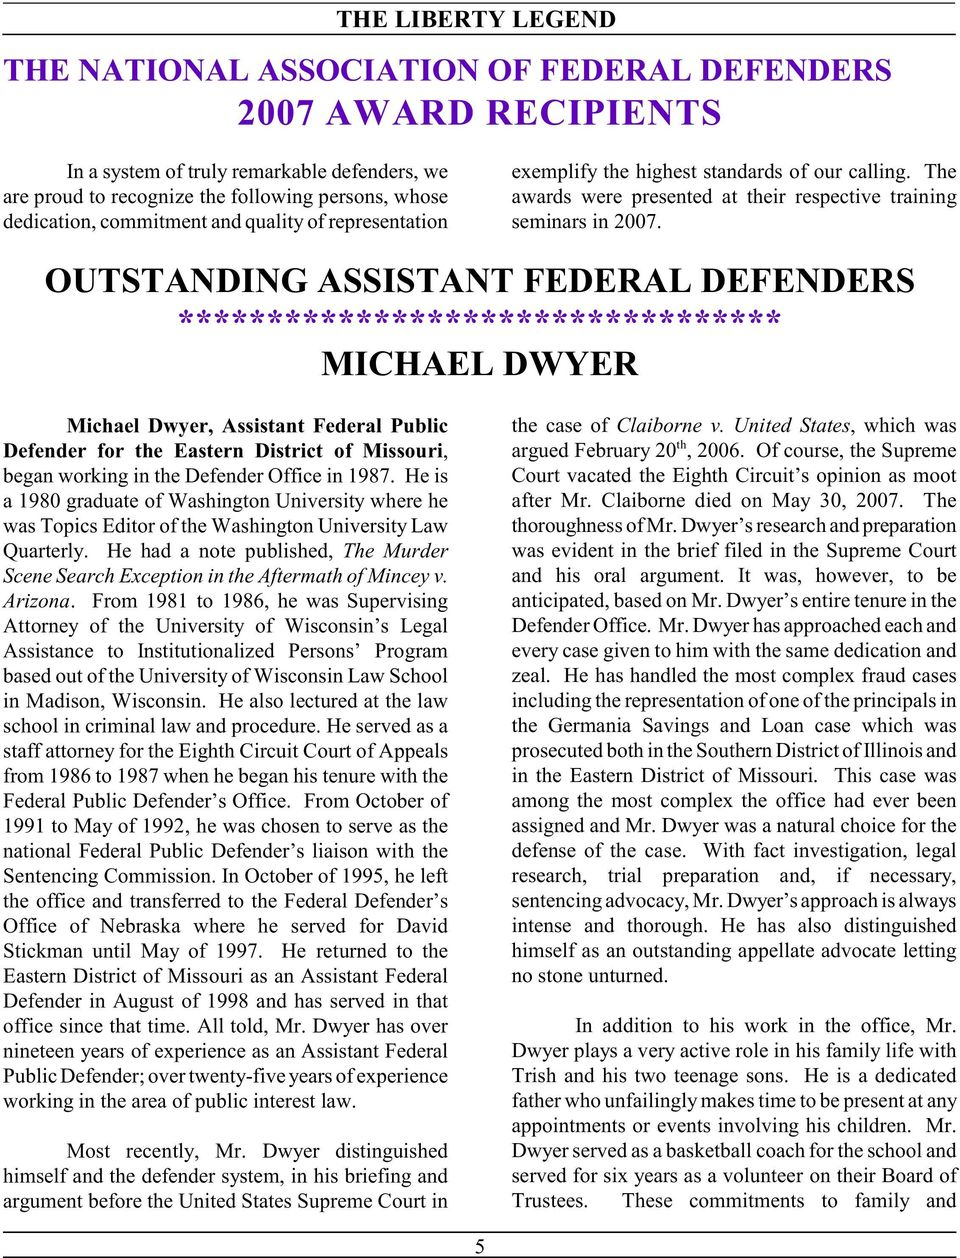 OUTSTANDING ASSISTANT FEDERAL DEFENDERS ********************************** MICHAEL DWYER Michael Dwyer, Assistant Federal Public Defender for the Eastern District of Missouri, began working in the